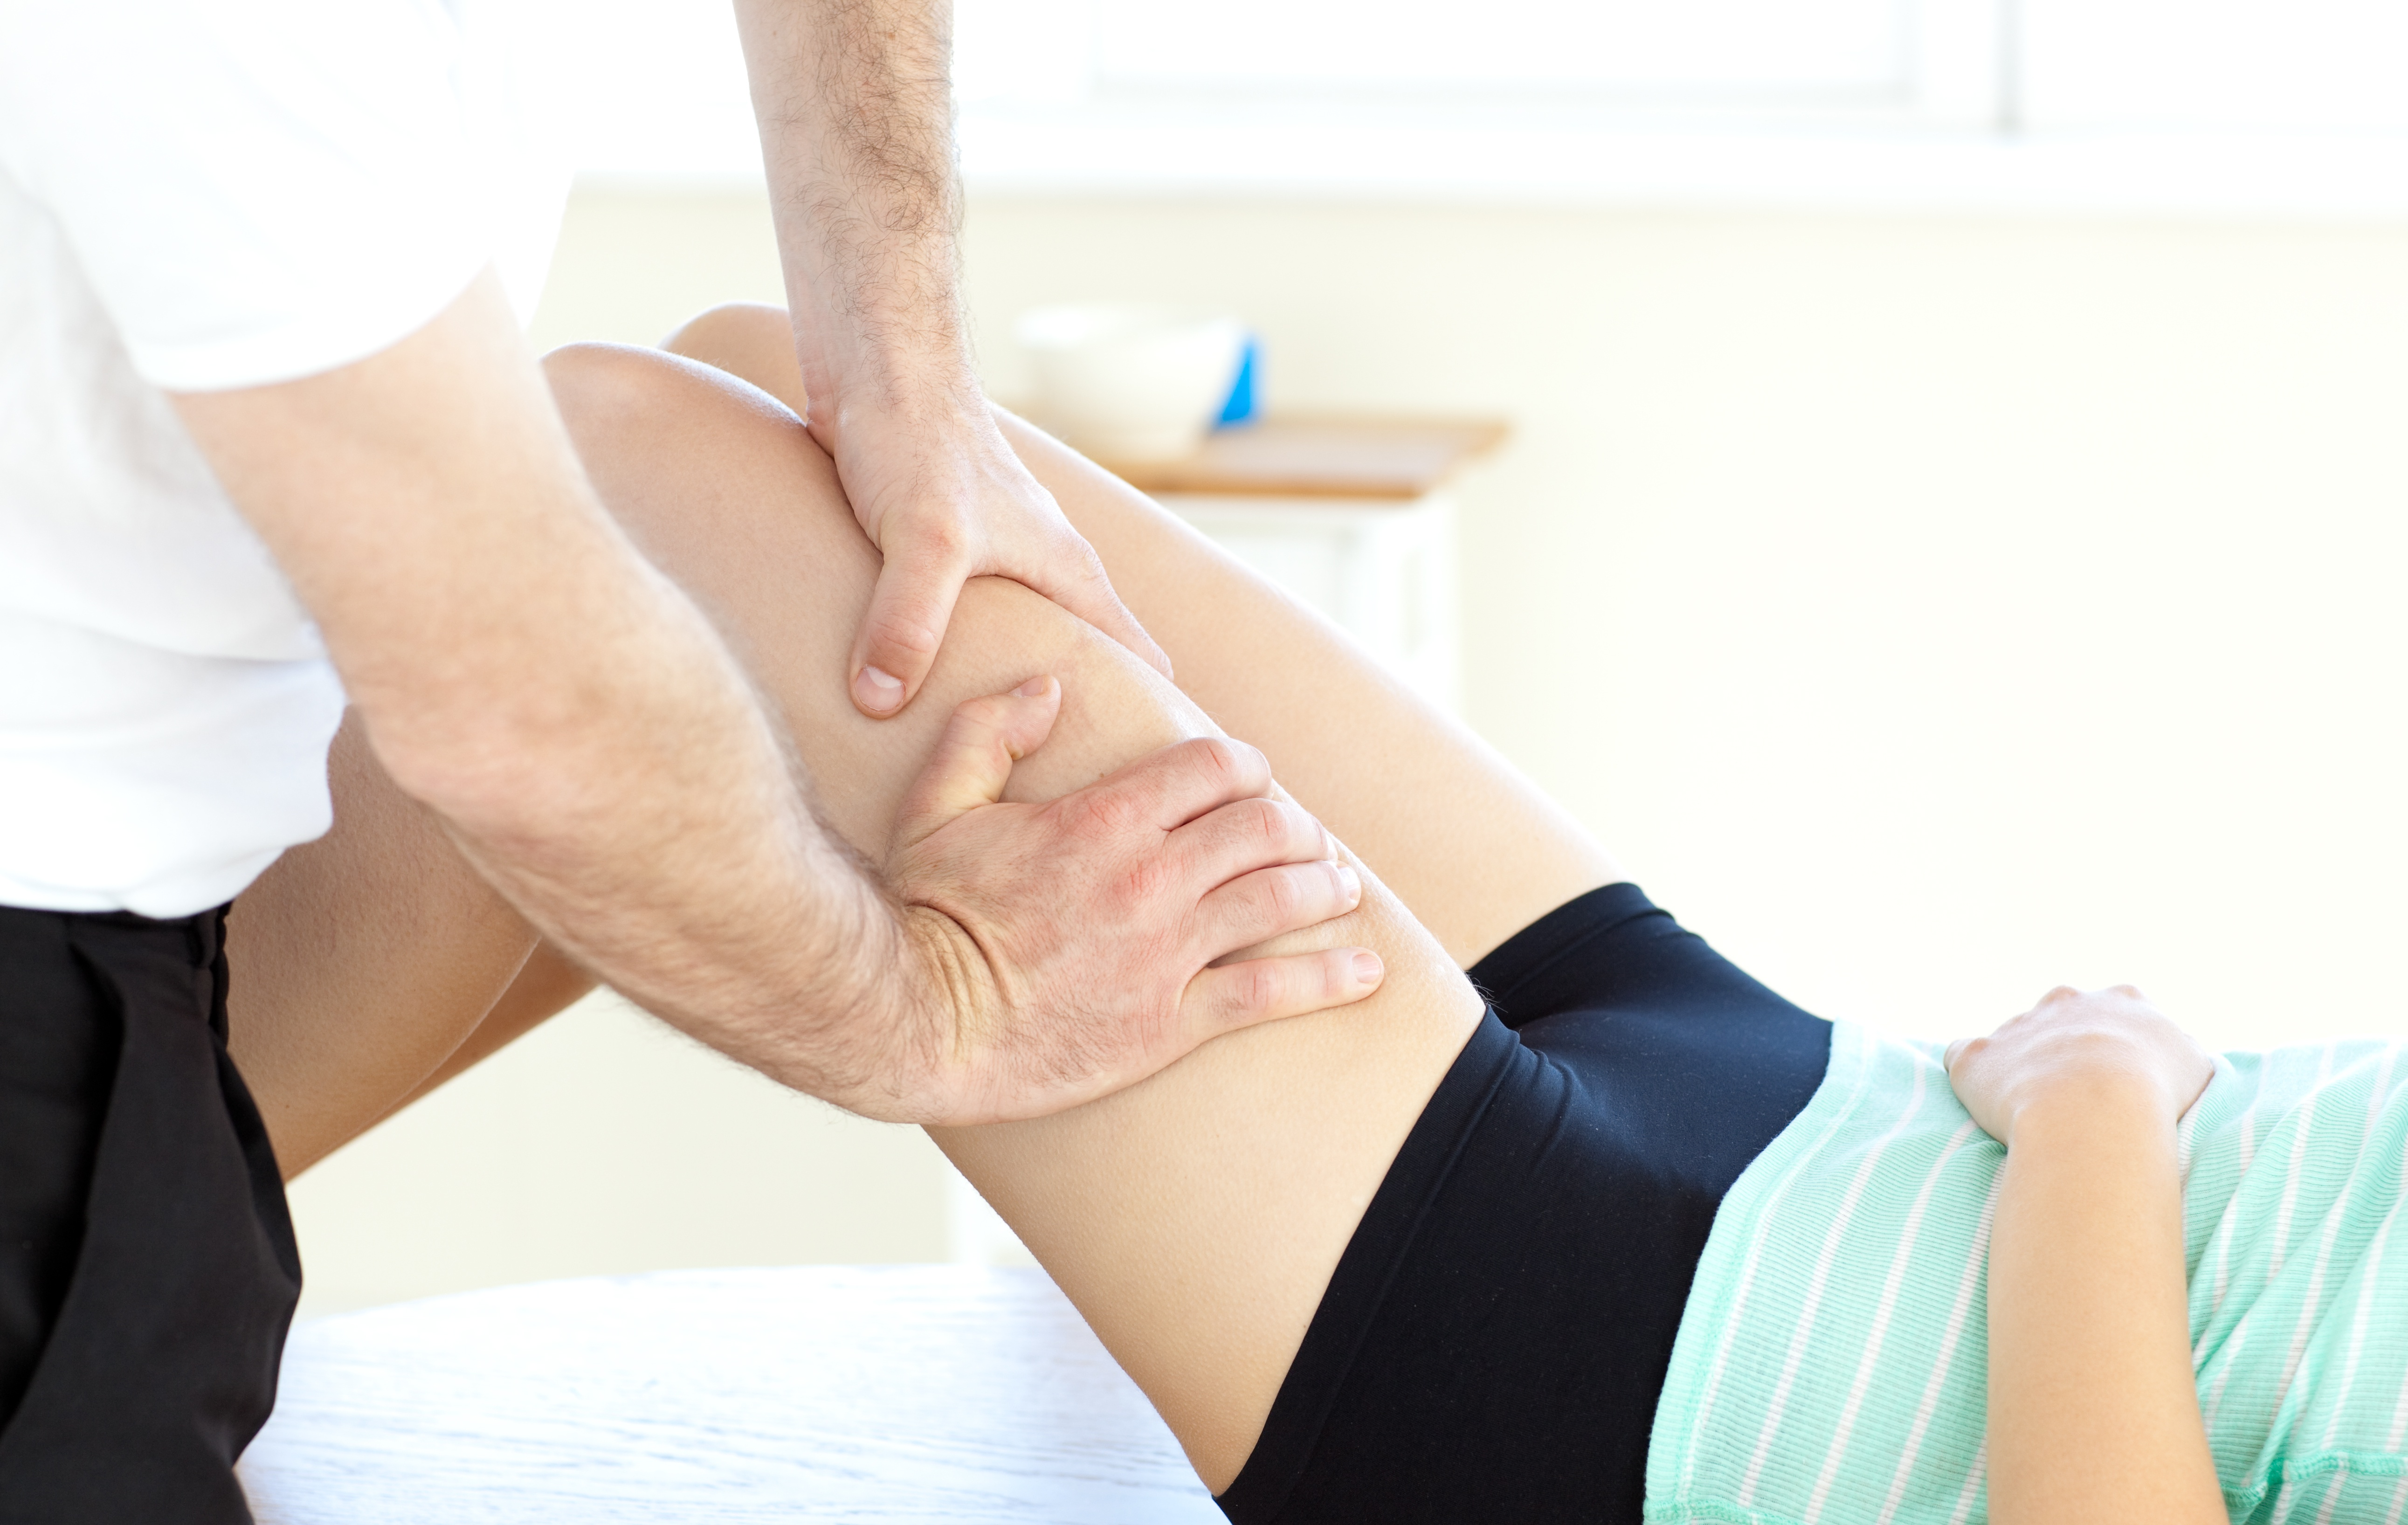 An athletic trainer massaging an athlete's injured leg